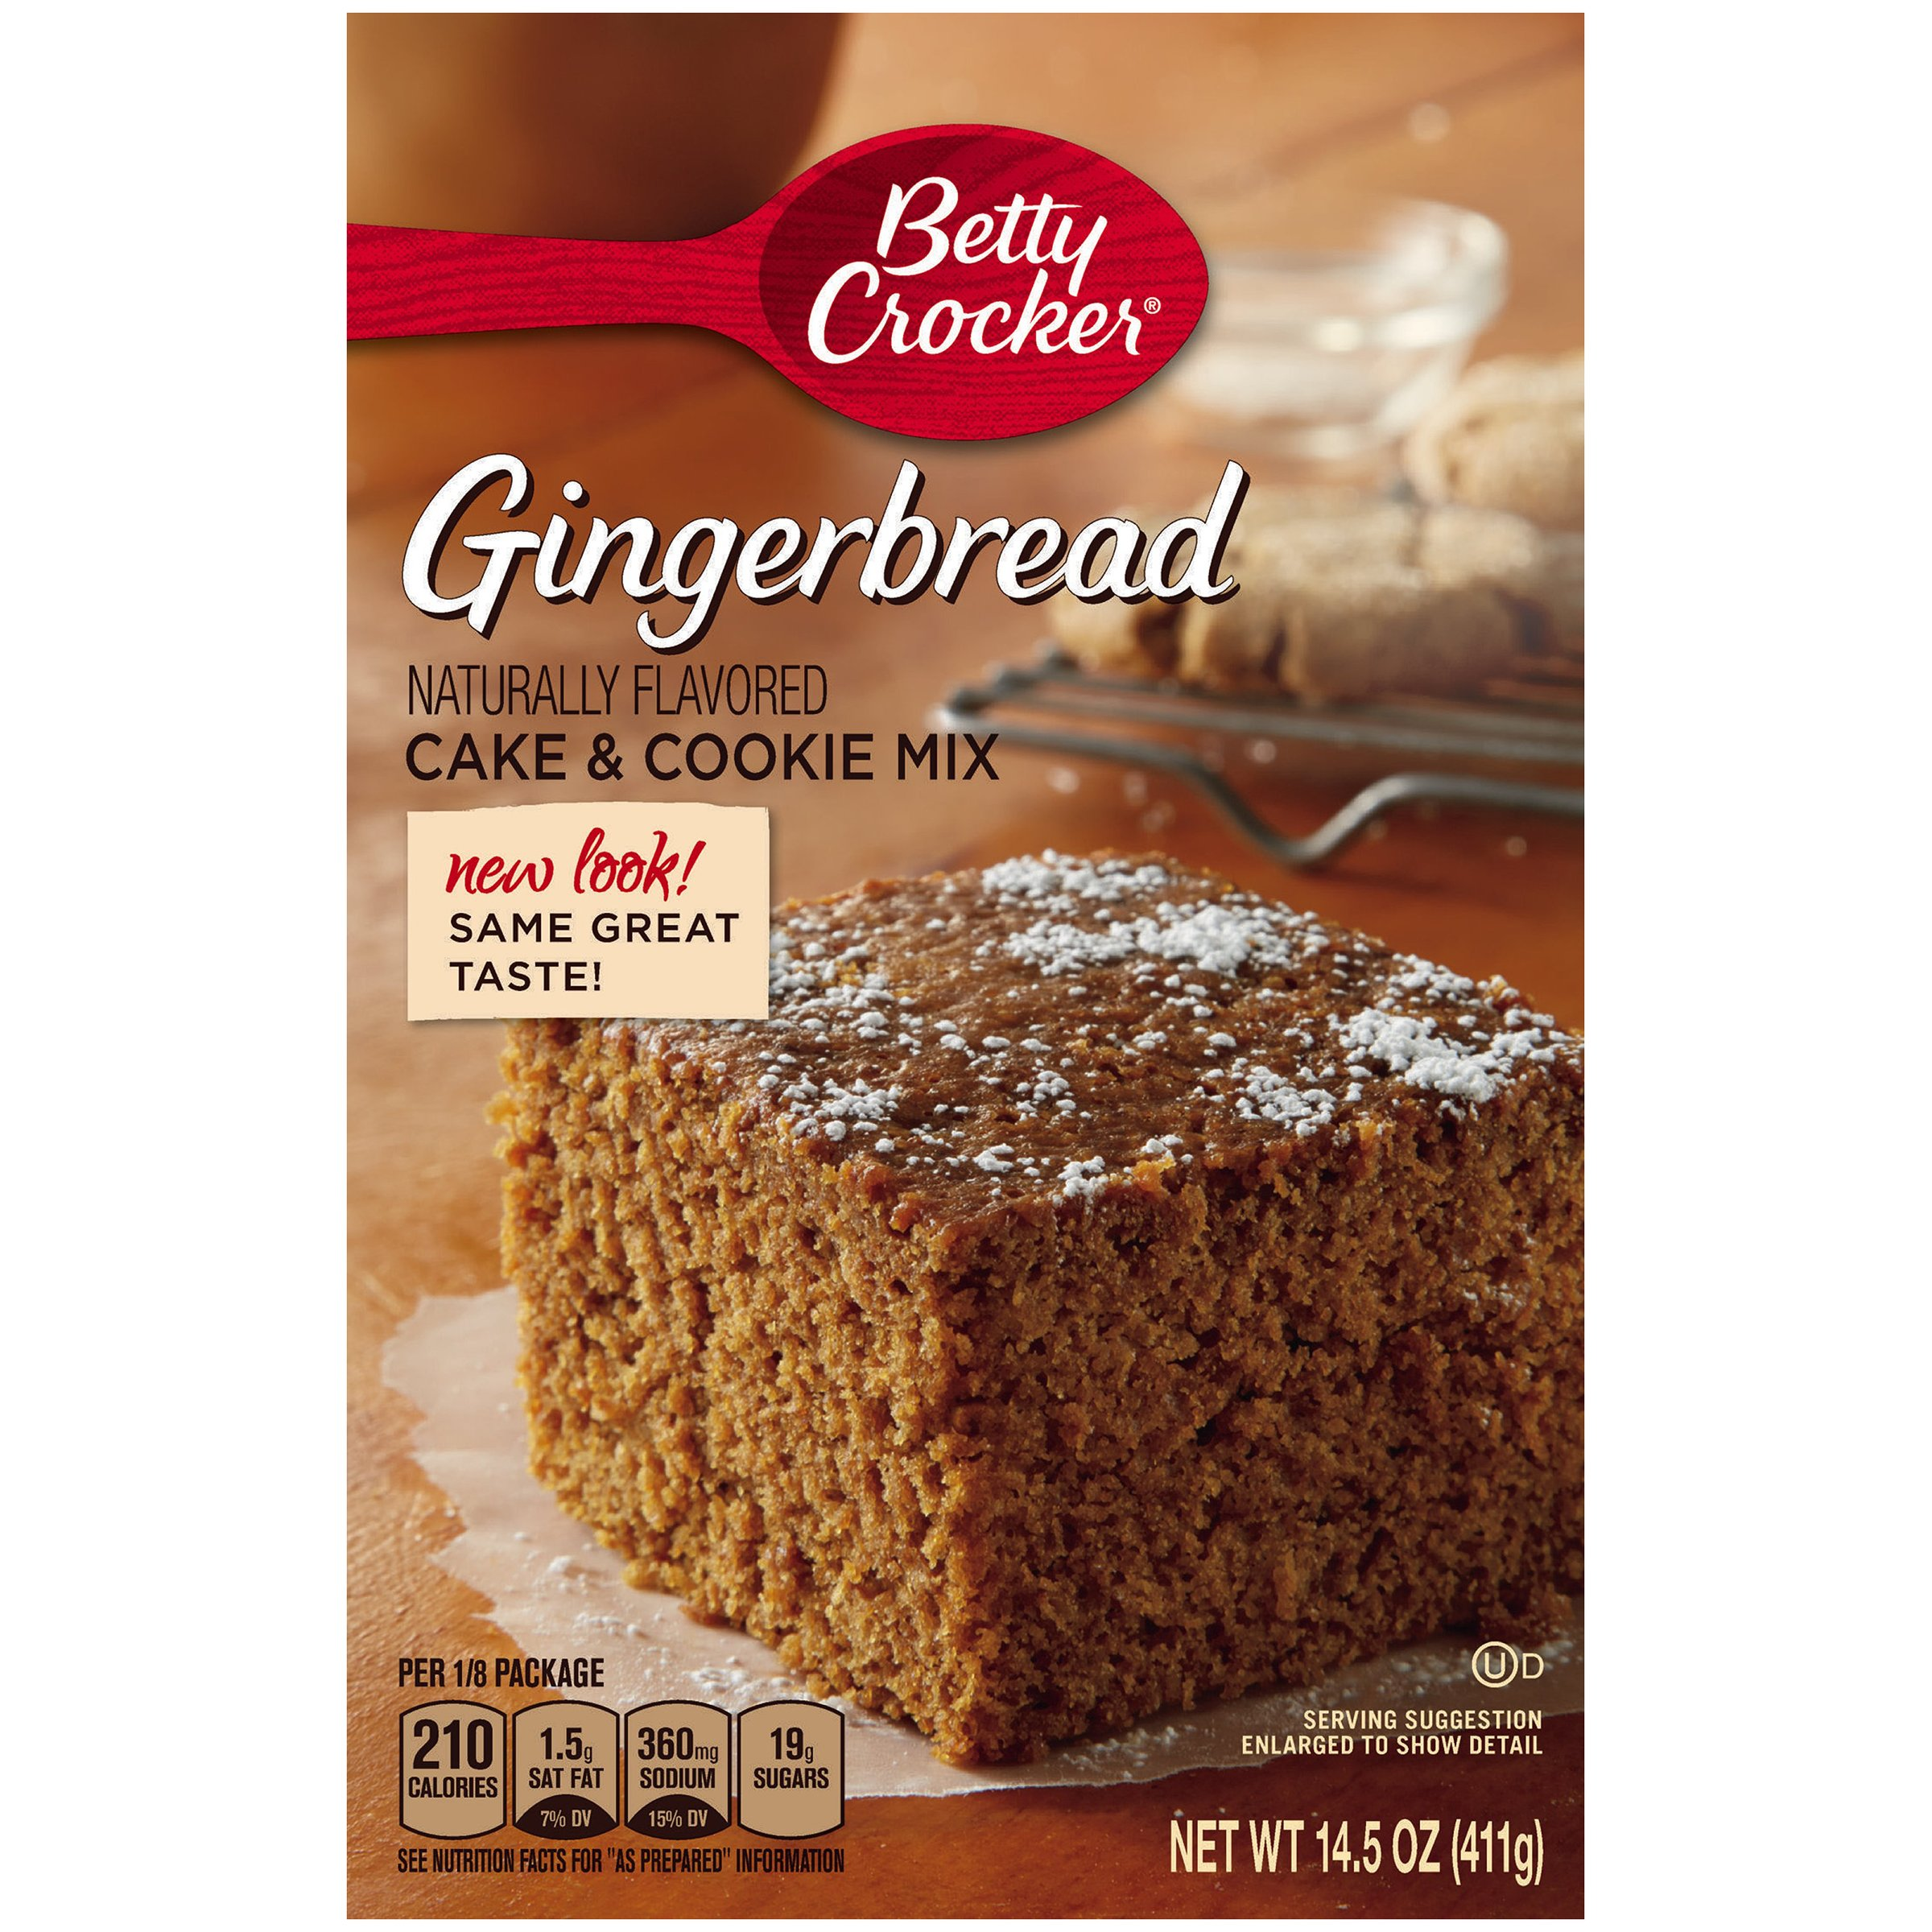 Betty Crocker Baking Mix, Cake & Cookie Mix, Gingerbread, 14.5 Oz Box (Pack of 12) by Betty Crocker